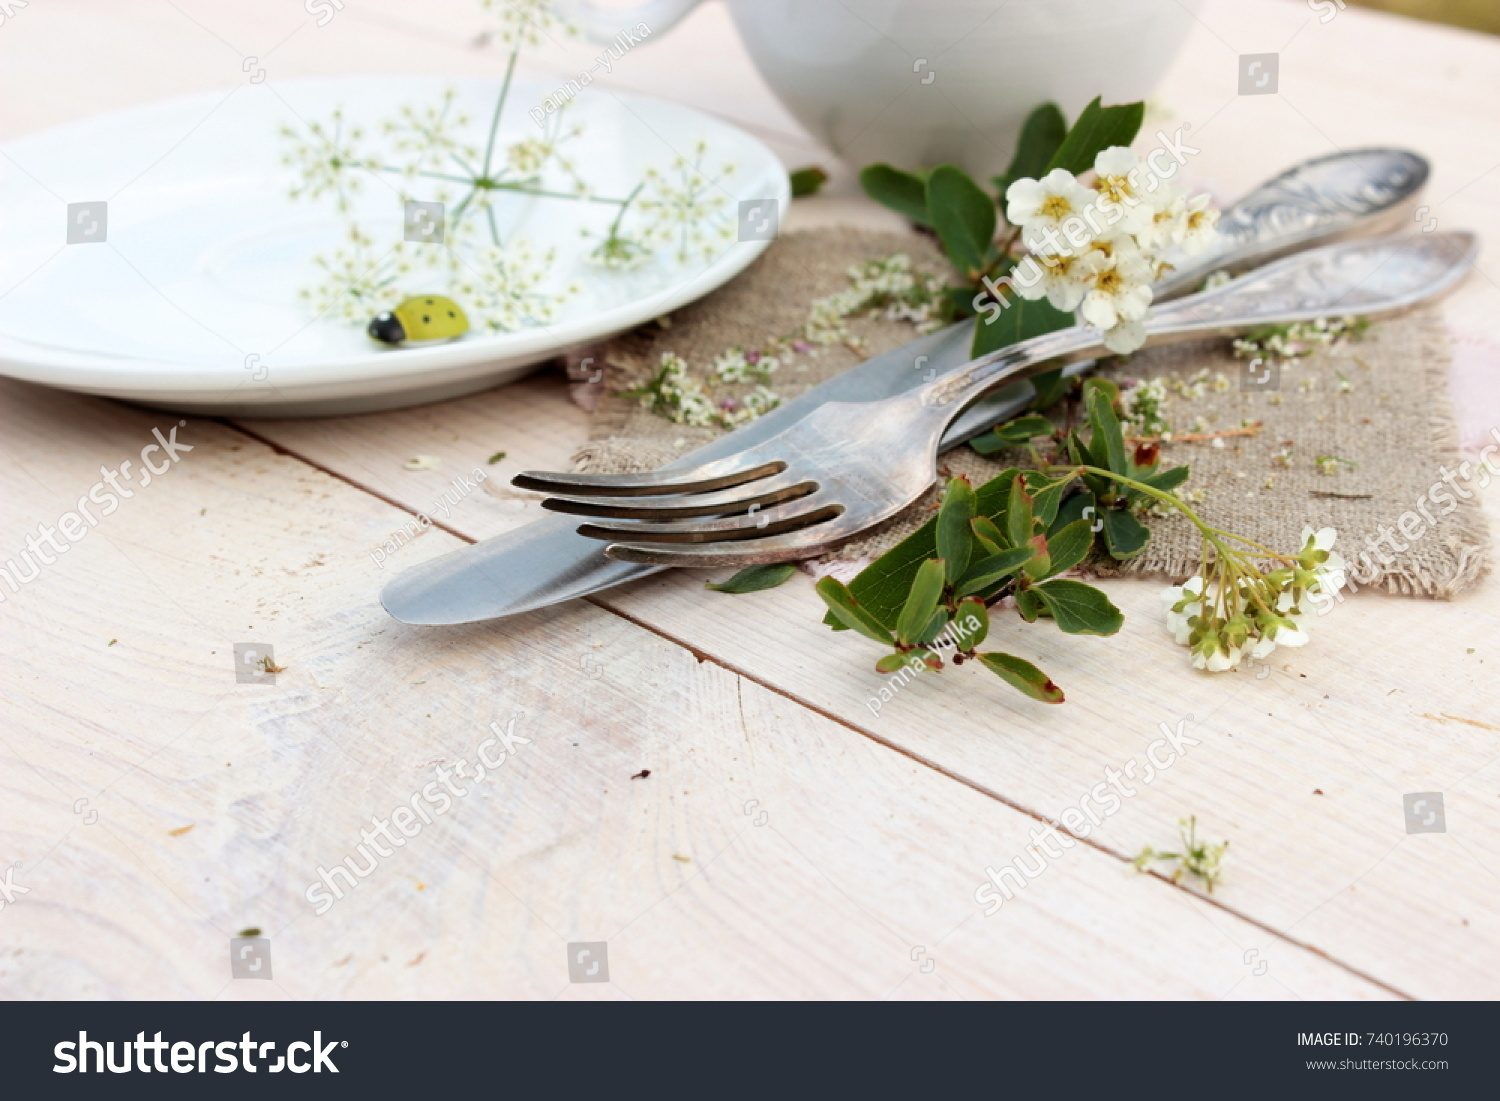 Concept Dinner Ware Set Decor Silver Stock Photo (Royalty Free ...